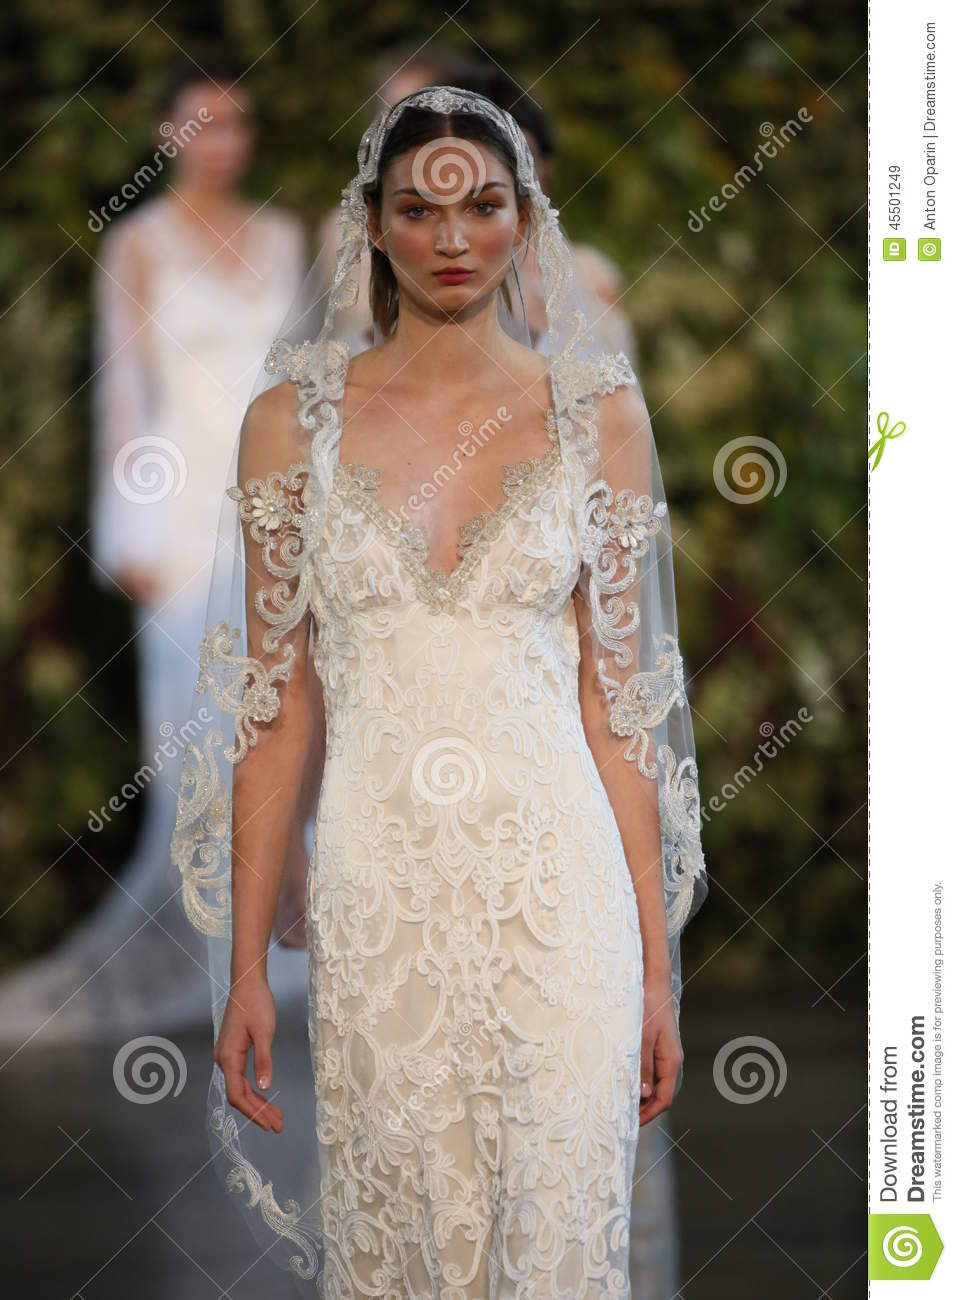 NEW YORK, NY - OCTOBER 10: Models walk the runway finale during the Claire Pettibone Fall 2015 Bridal Collection Show